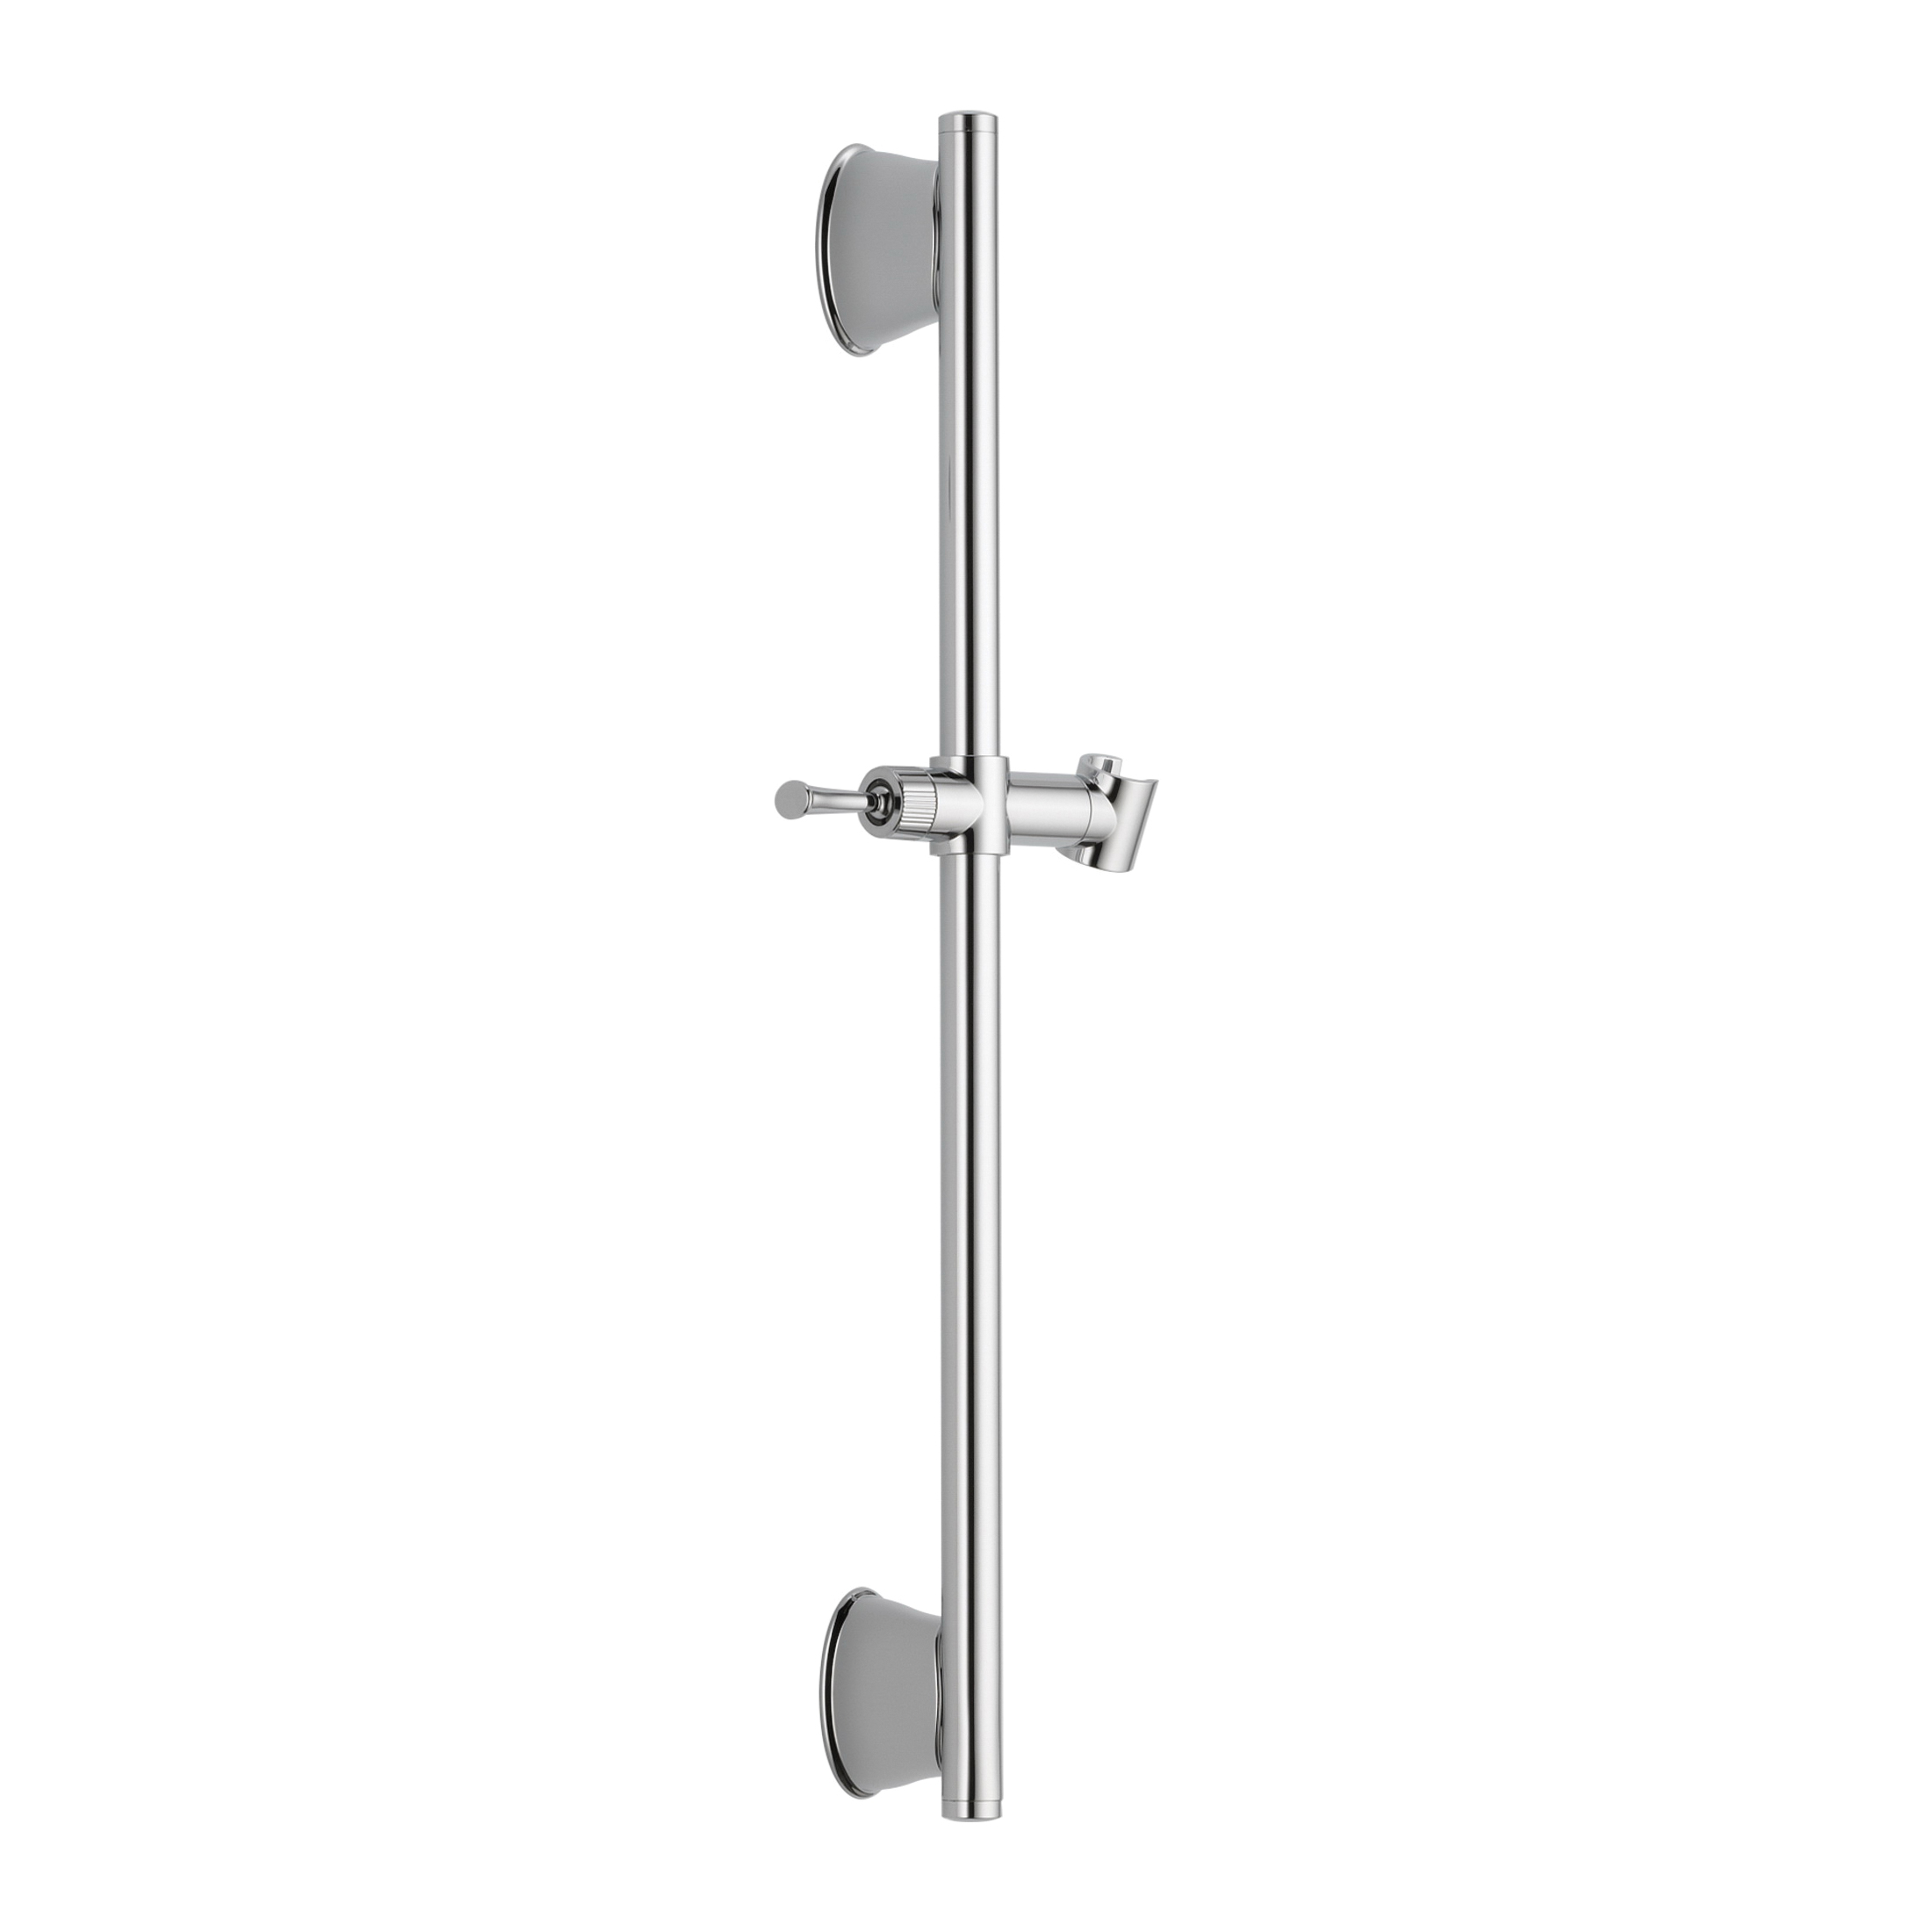 DELTA® 55044-PK Adjustable Wall Bar With Adjustable Slide, 24 in L Bar, 24-5/8 in OAL x 2-13/16 in OAD, Chrome Plated, Import